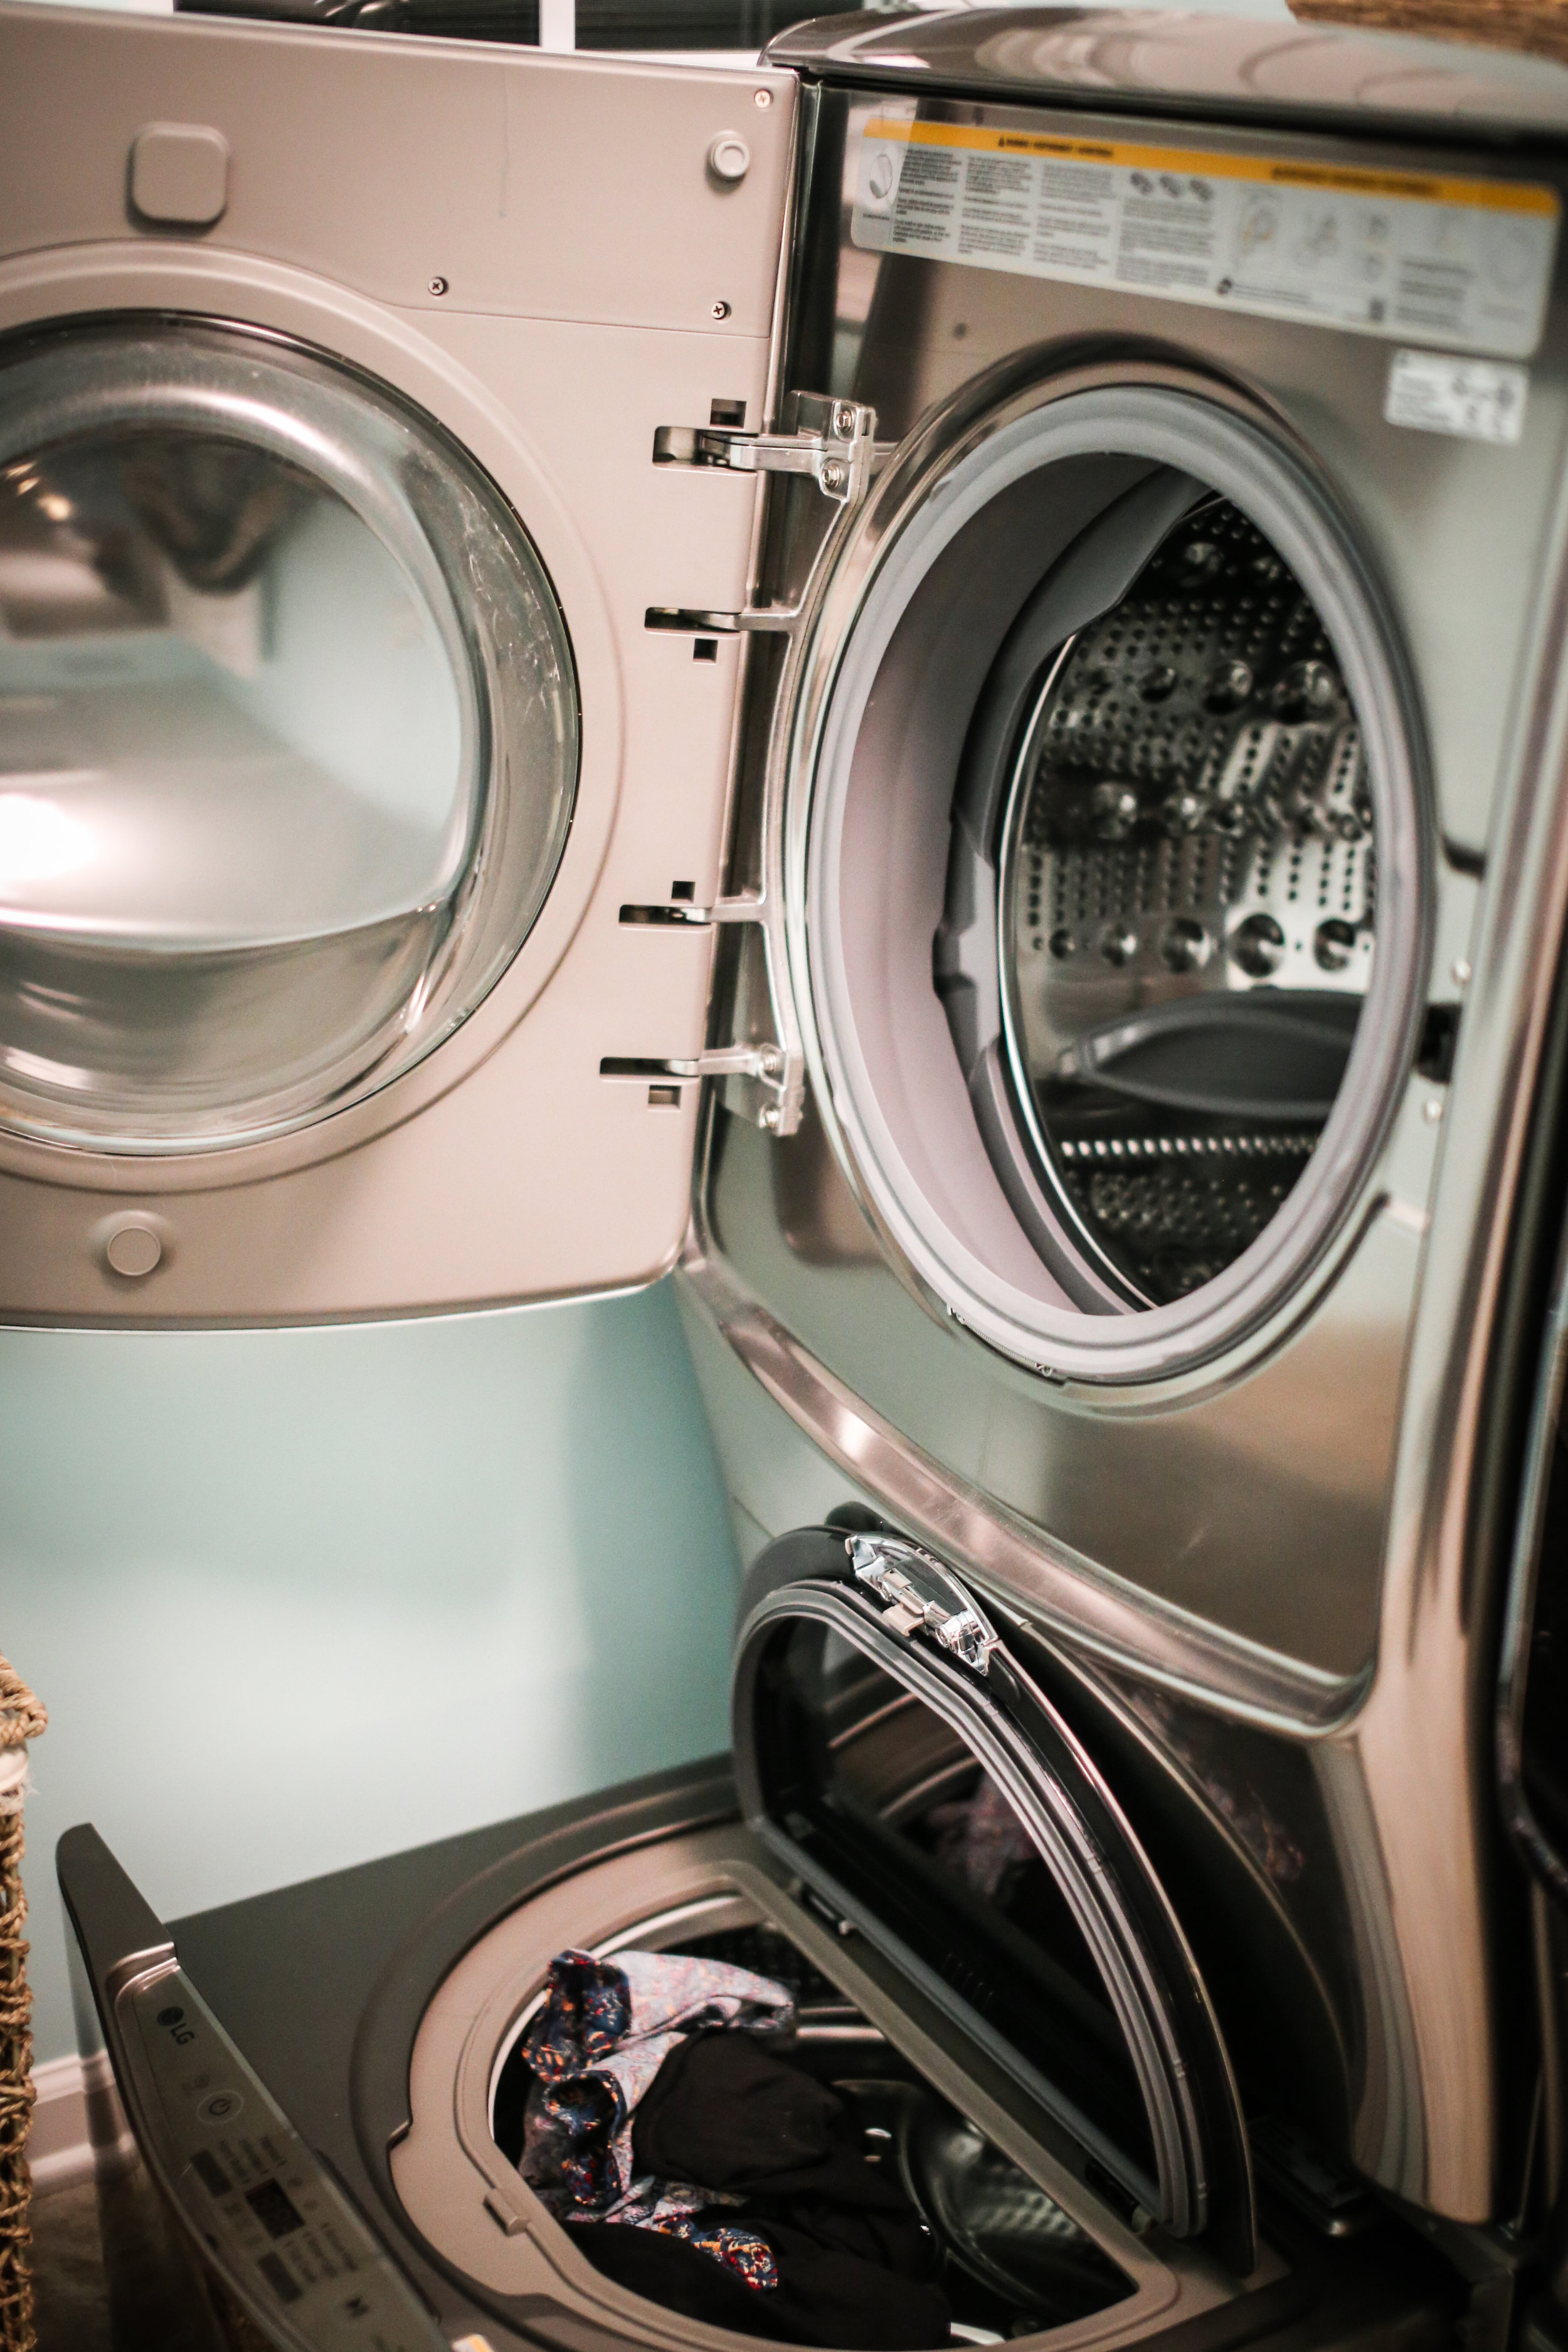 Are you looking for a new washer and dryer or just want to know a good choice for when it is time? I found the perfect washer and dryer for my family and I'm sharing all about it today!